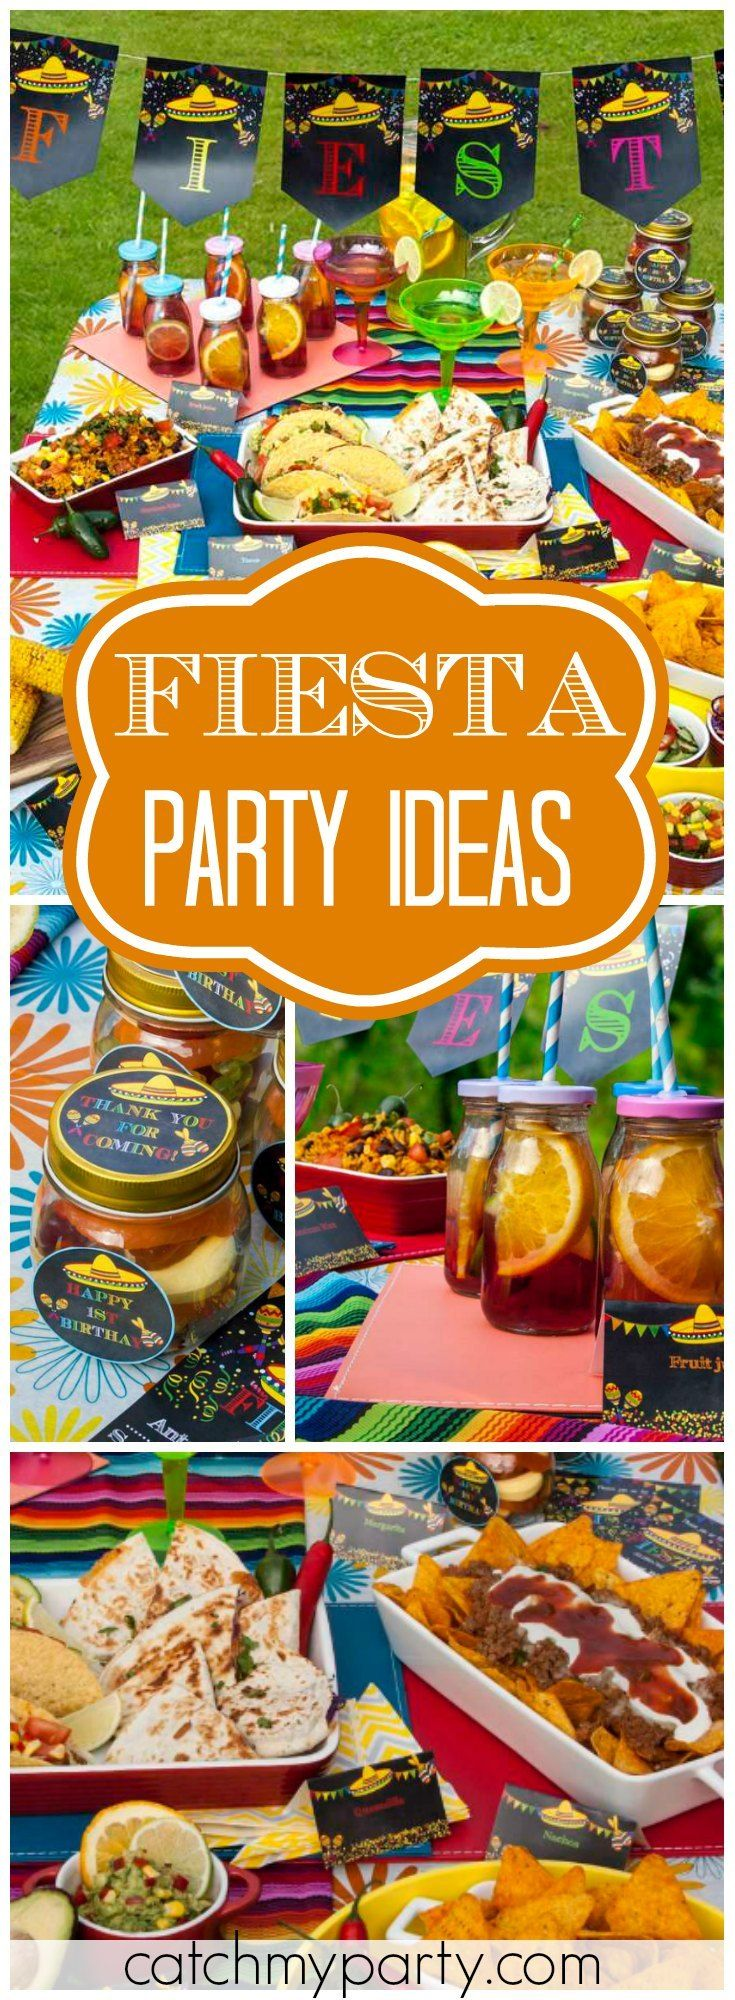 How about having a Mexican fiesta for a first birthday?! See more party ideas at Catchmyparty.com!